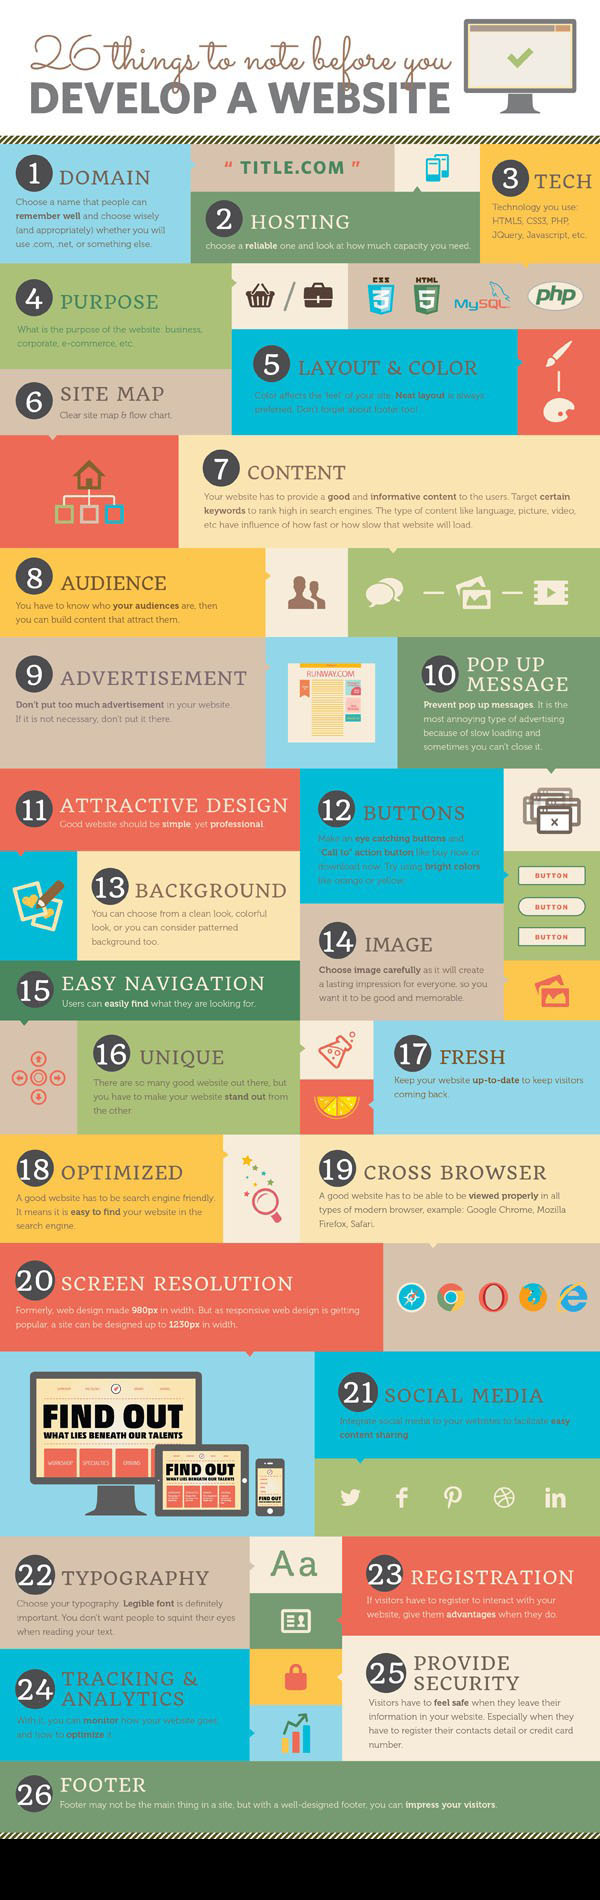 develop-website-infographic copy